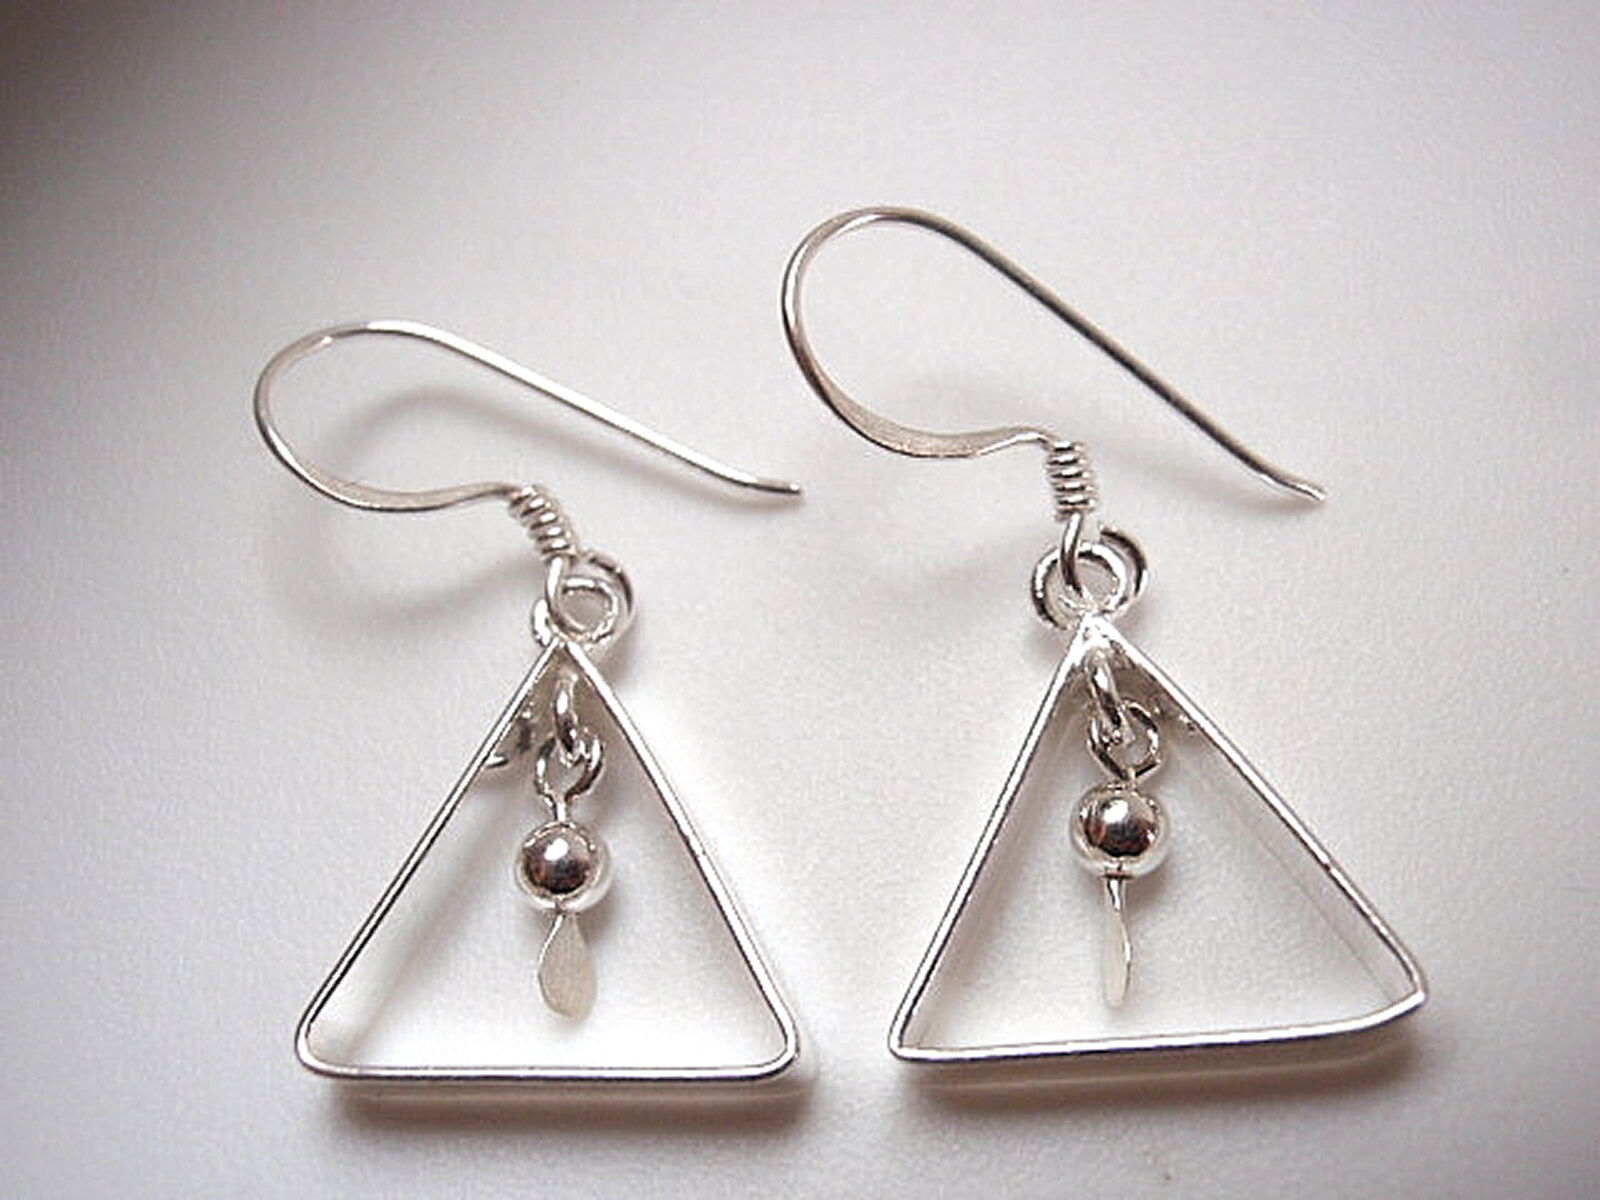 Primary image for Triangle w/ Hanging Ball Dangle Earrings 925 Sterling Silver Corona Sun Jewelry